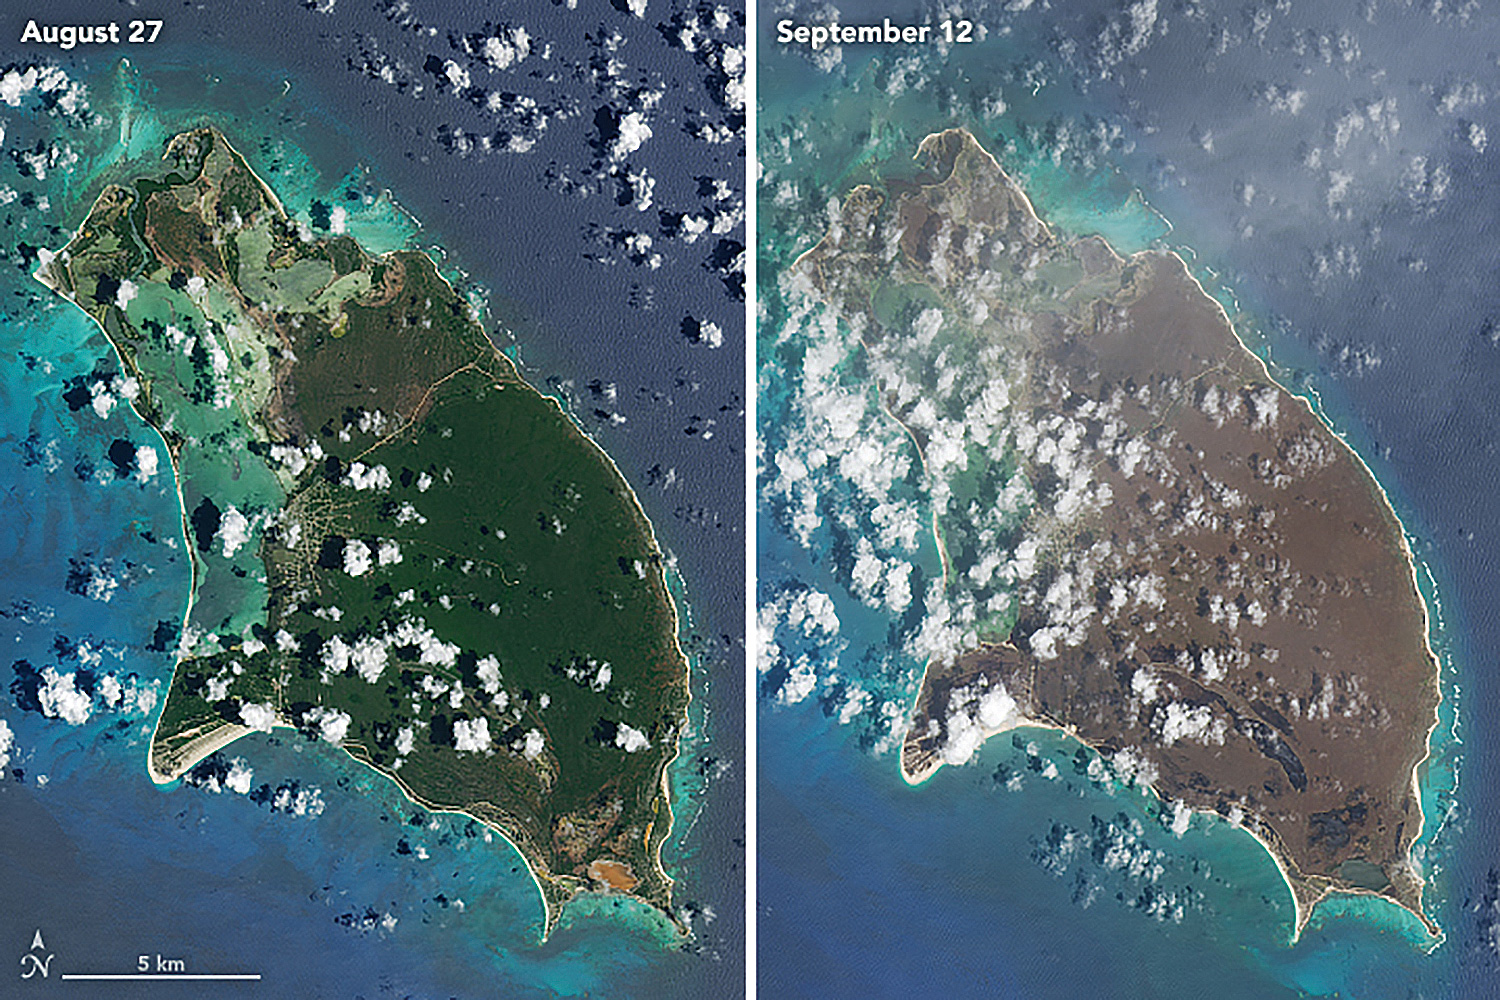 Satellite images reveal the significant impacts on Barbuda of Hurricane Irma, which made landfall on September 6, 2018. © NASA EARTH OBSERVATORY